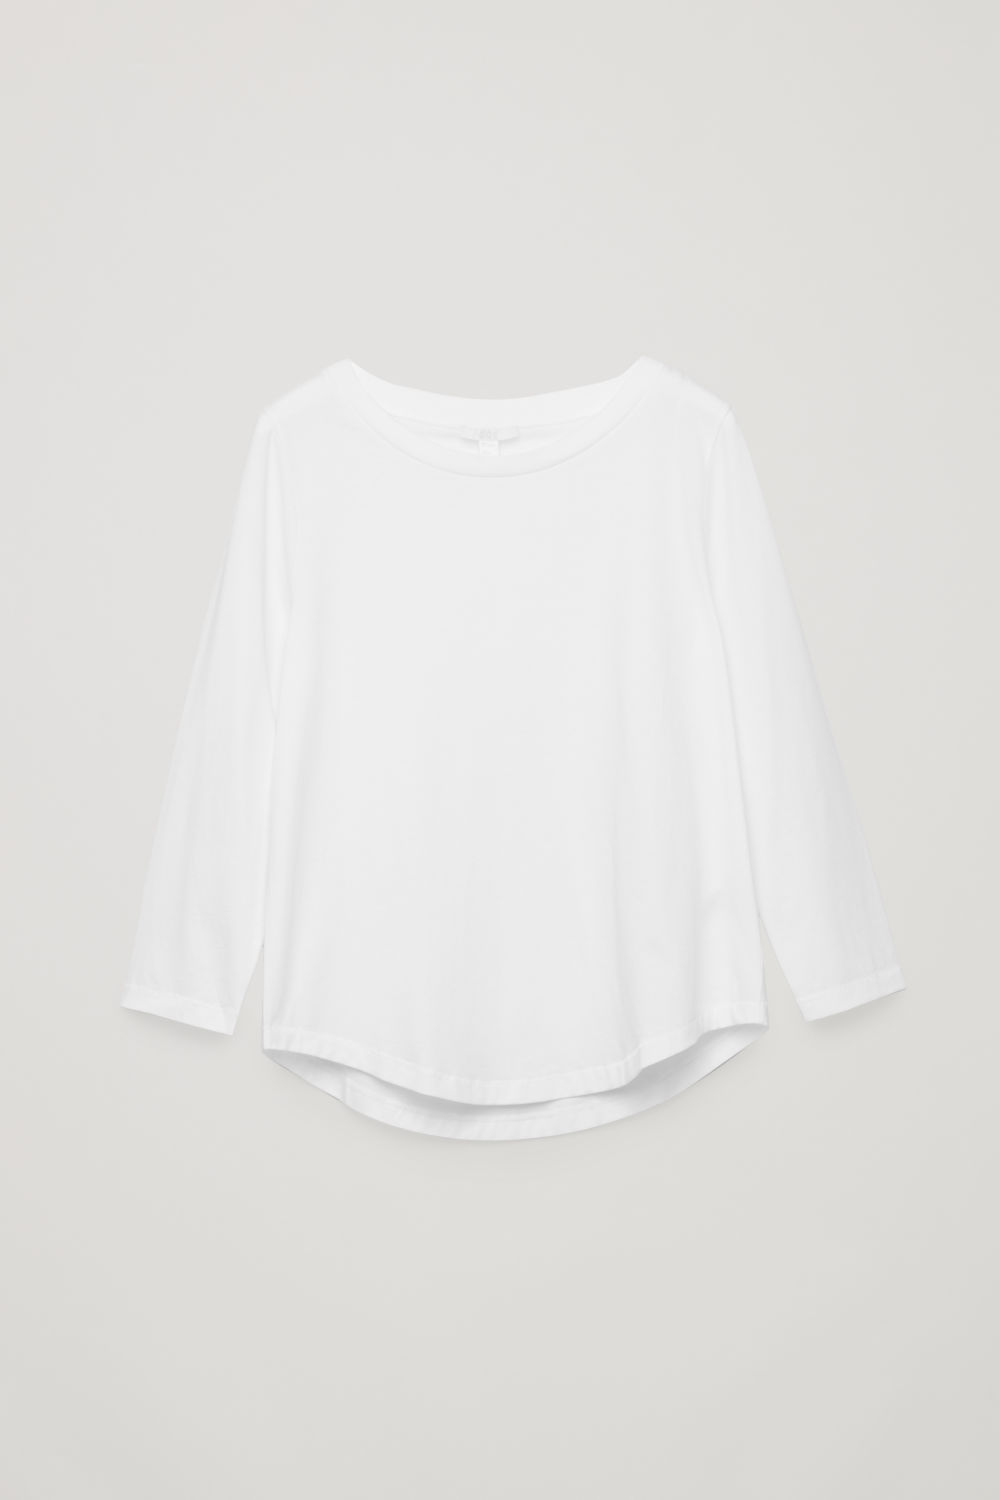 ¾-SLEEVED COTTON TOP